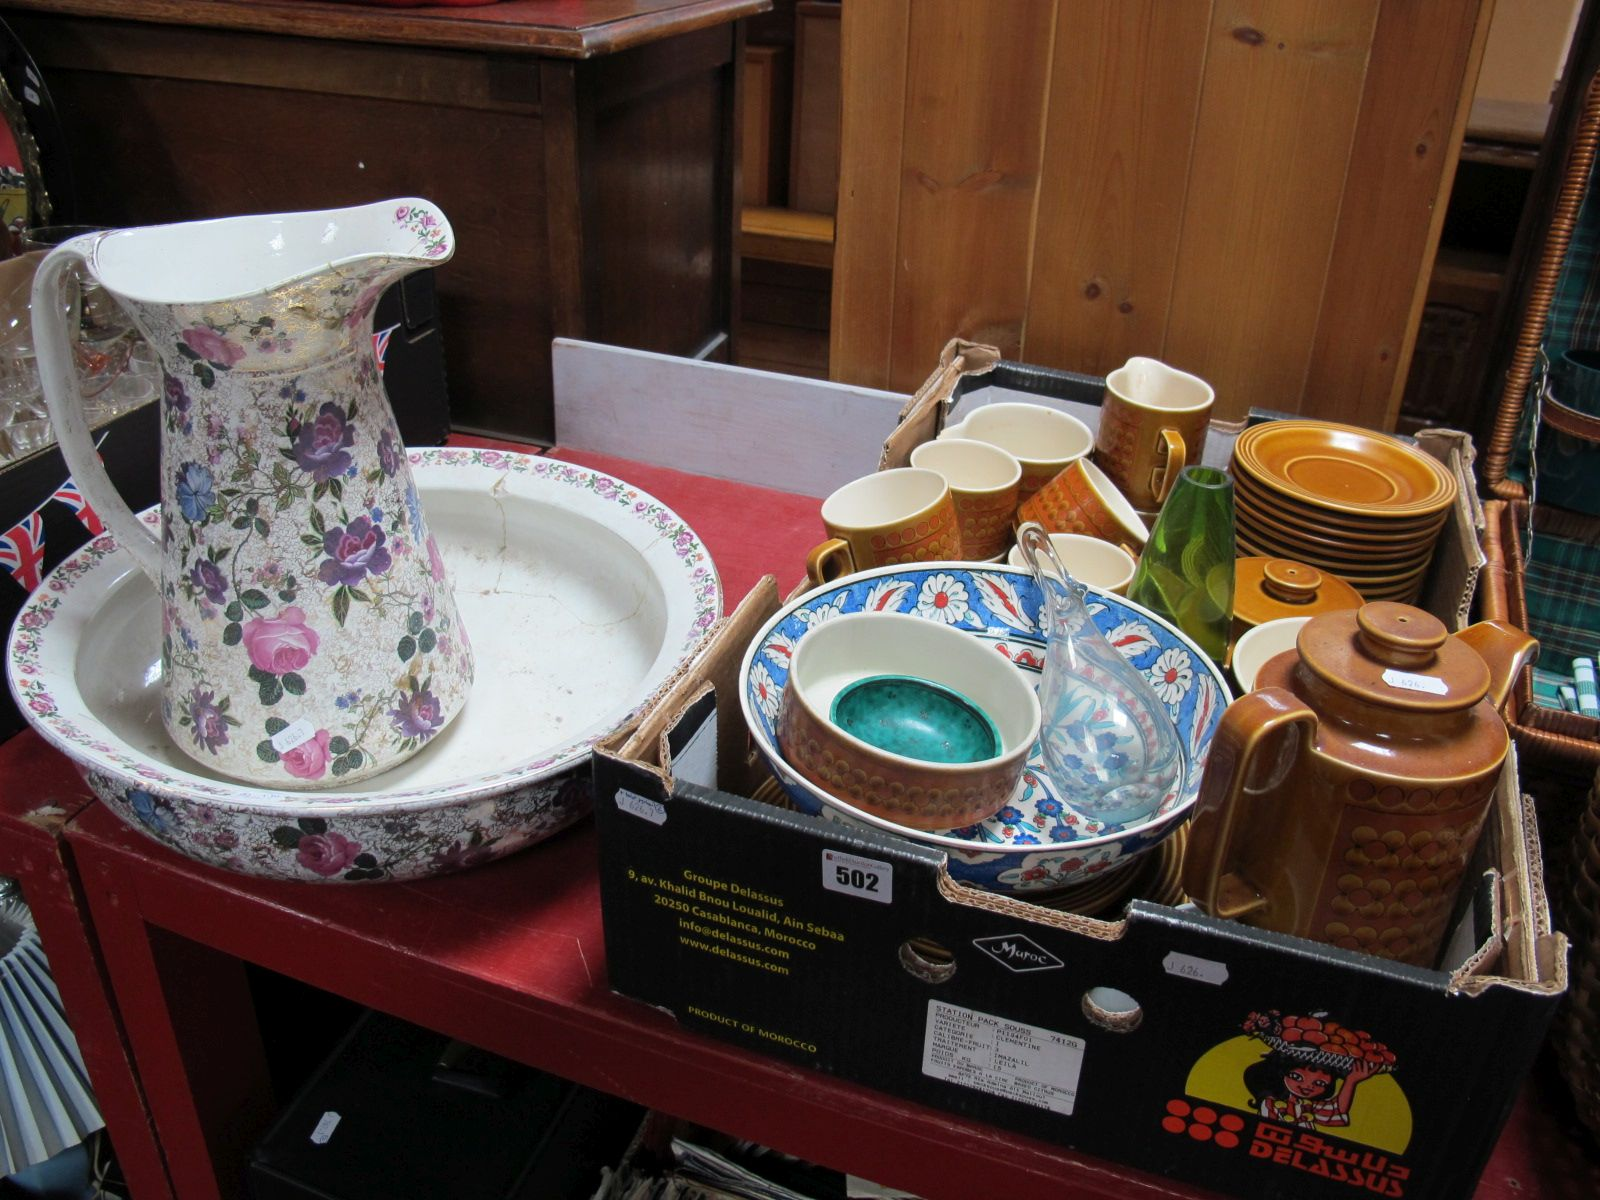 Lot 502 - A Quantity of Hornsea 'Saffron' Tea and Dinner Wares, (approximately fifty pieces), a Holmgaard